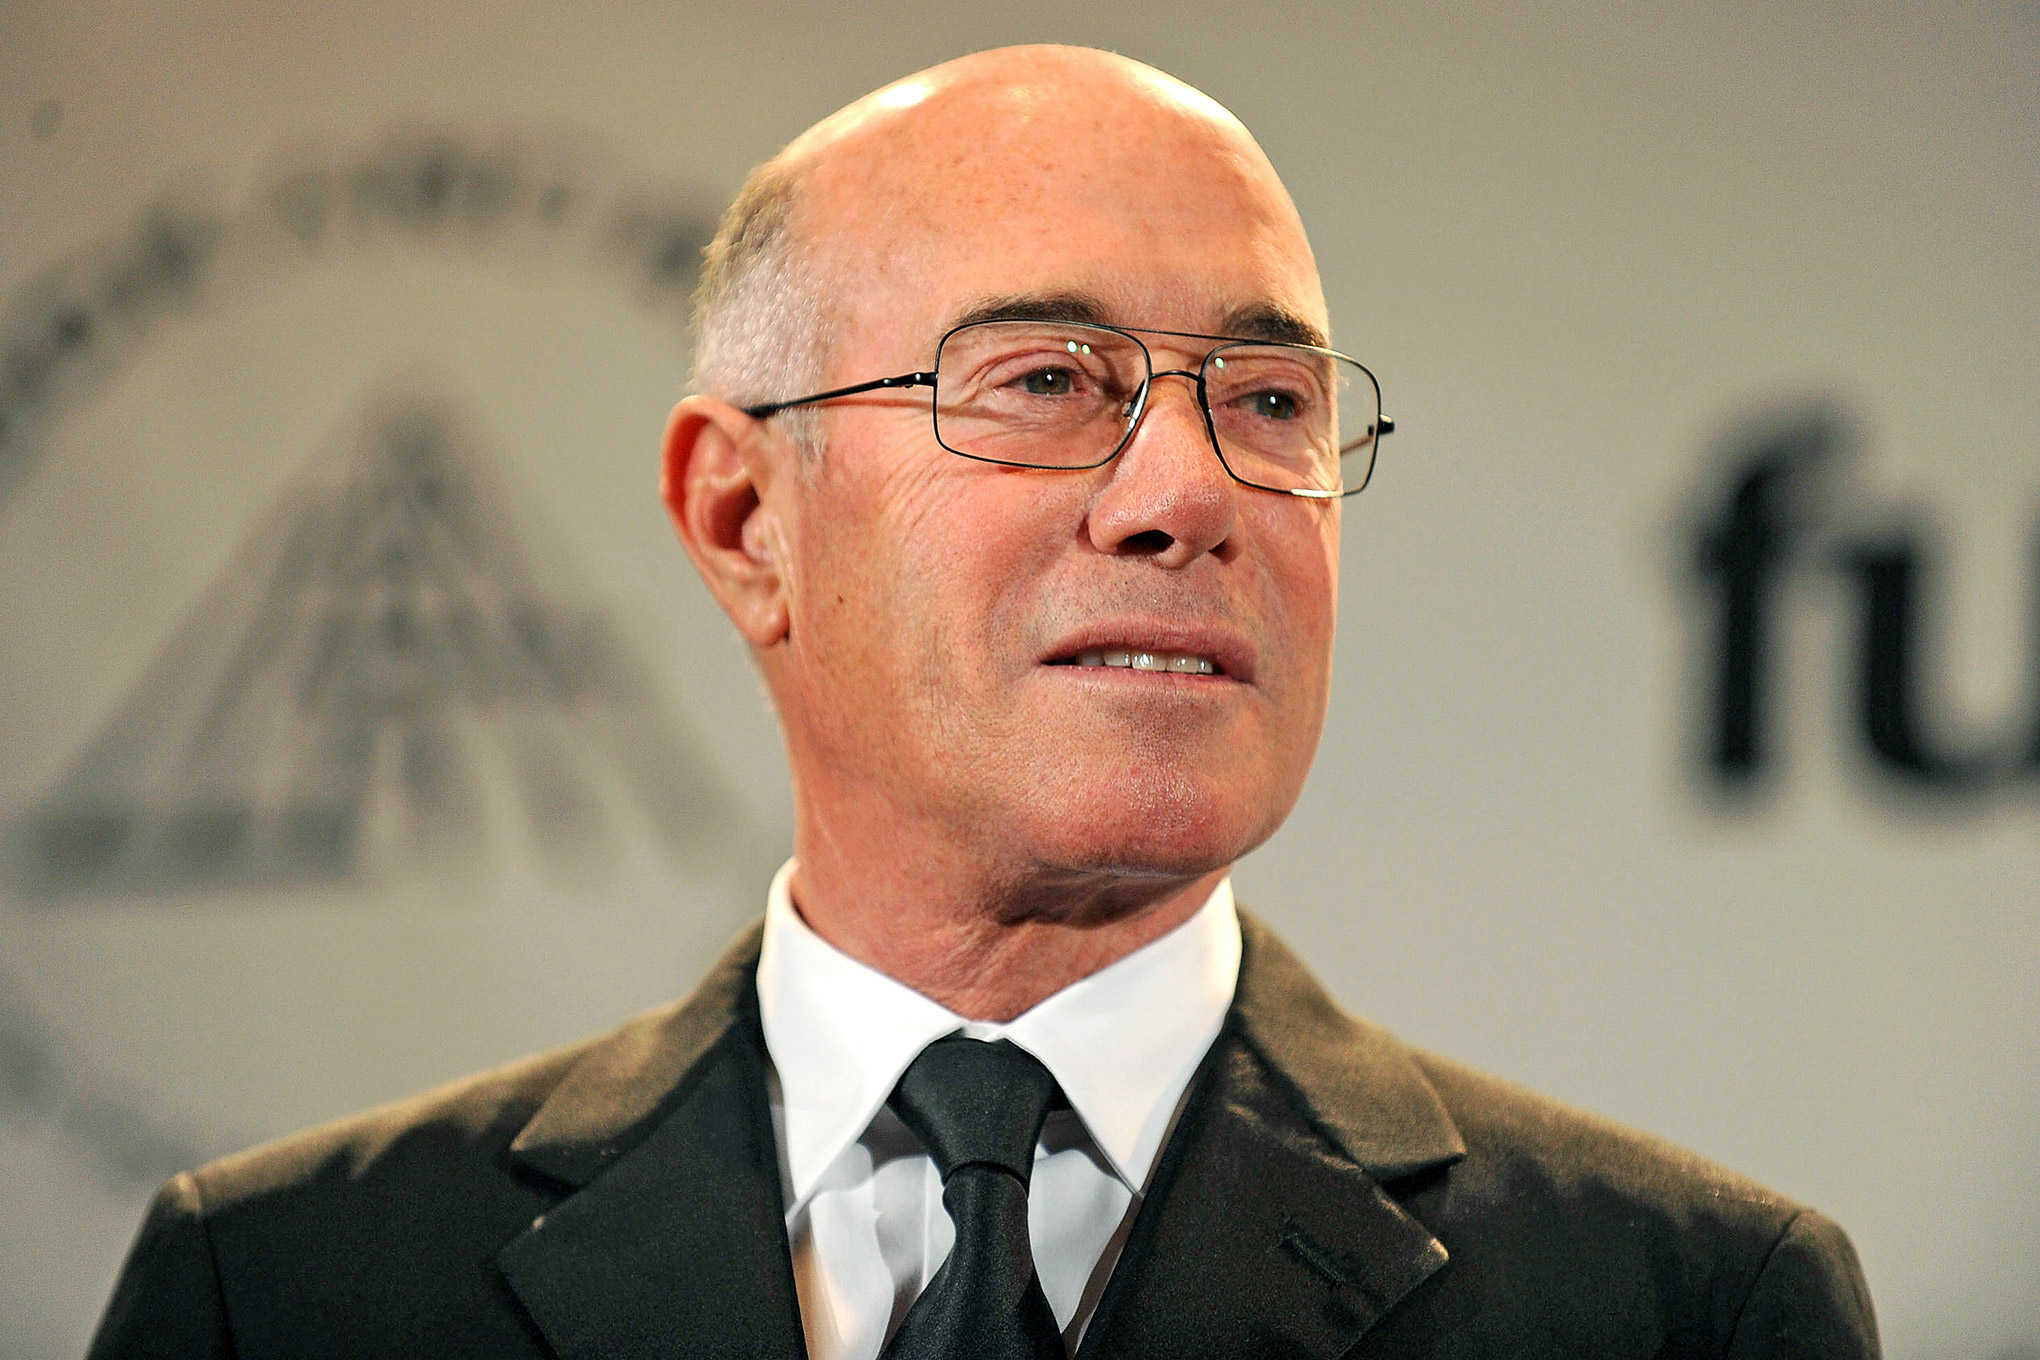 What Does David Geffen Get for His Half Billion Dollars in Philanthropy? — IMMORTALITY